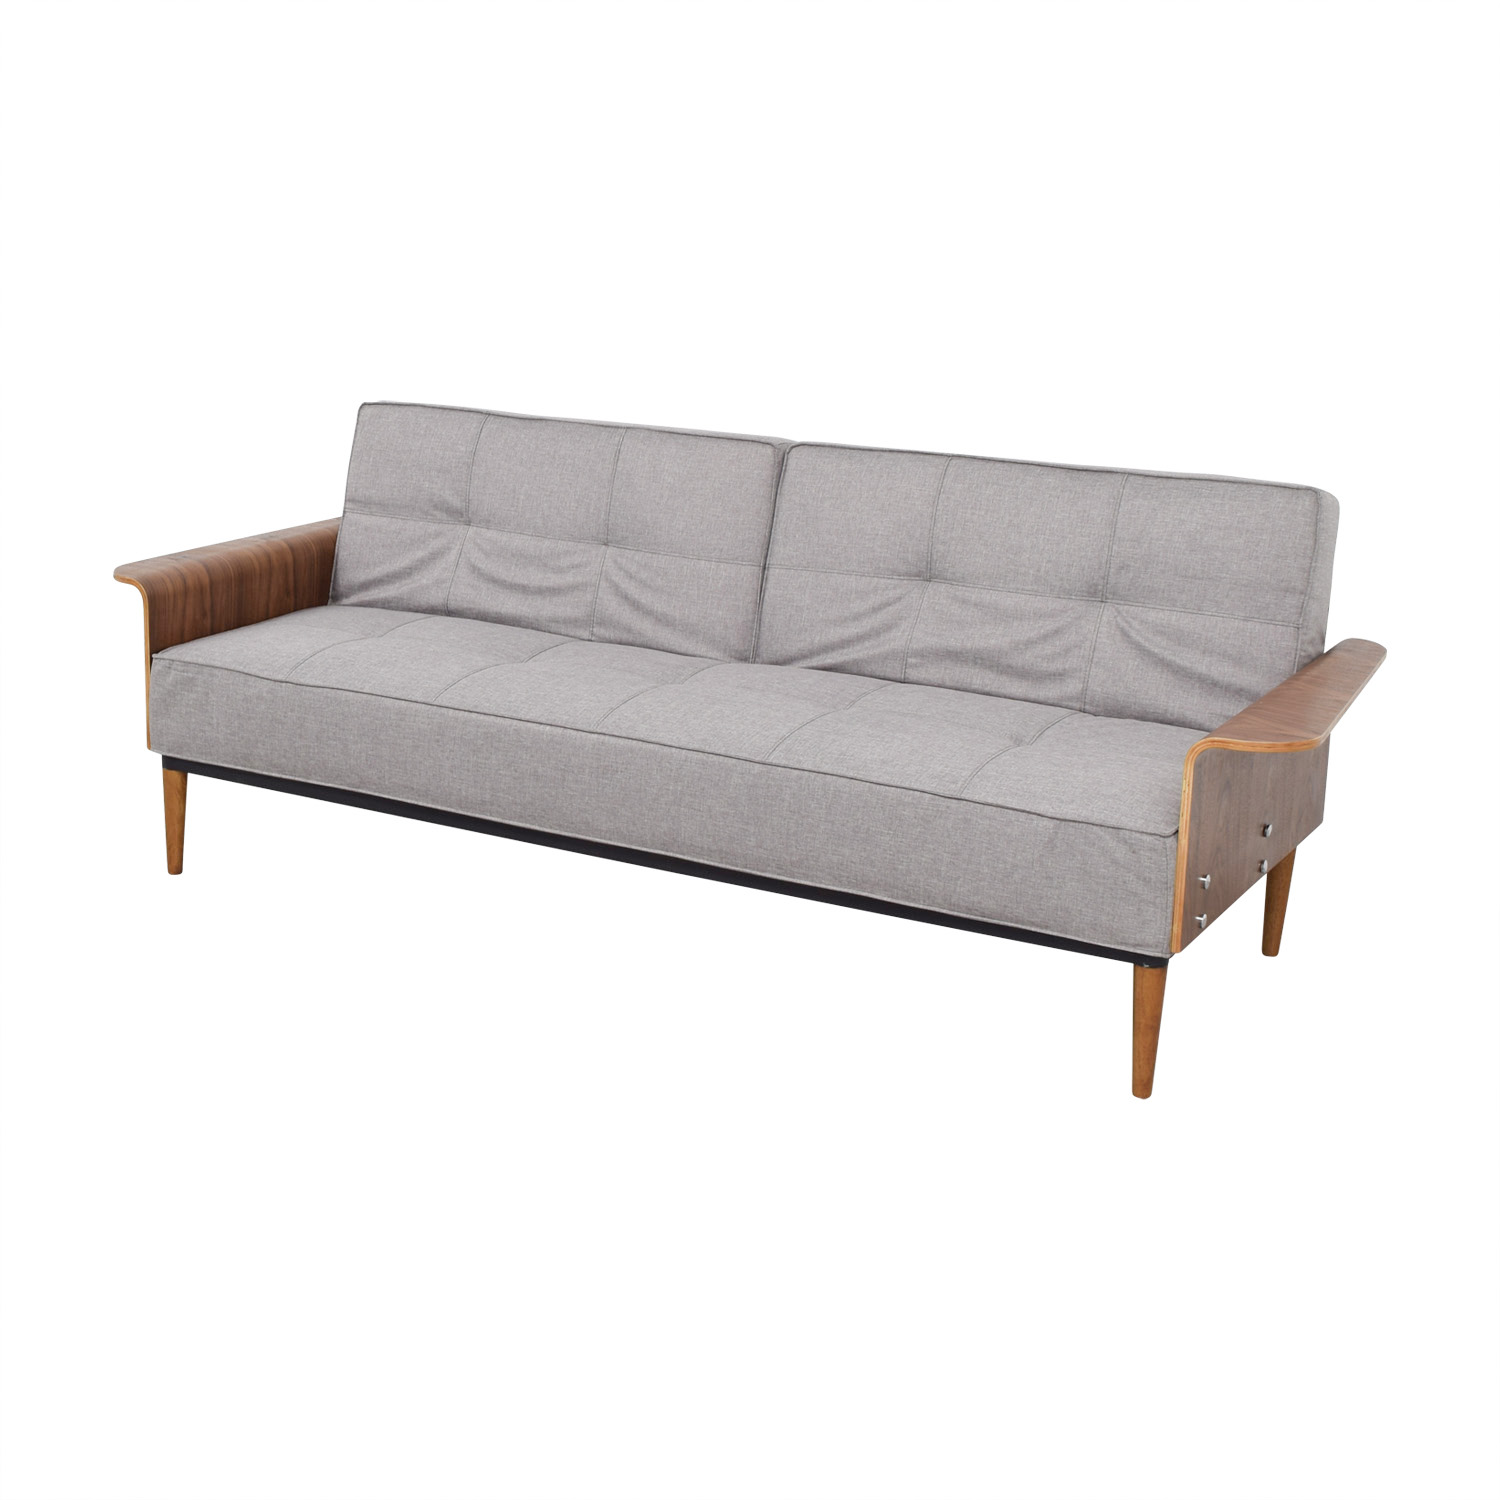 Inmod Bjorg Tufted Light Grey Sofabed Inmod